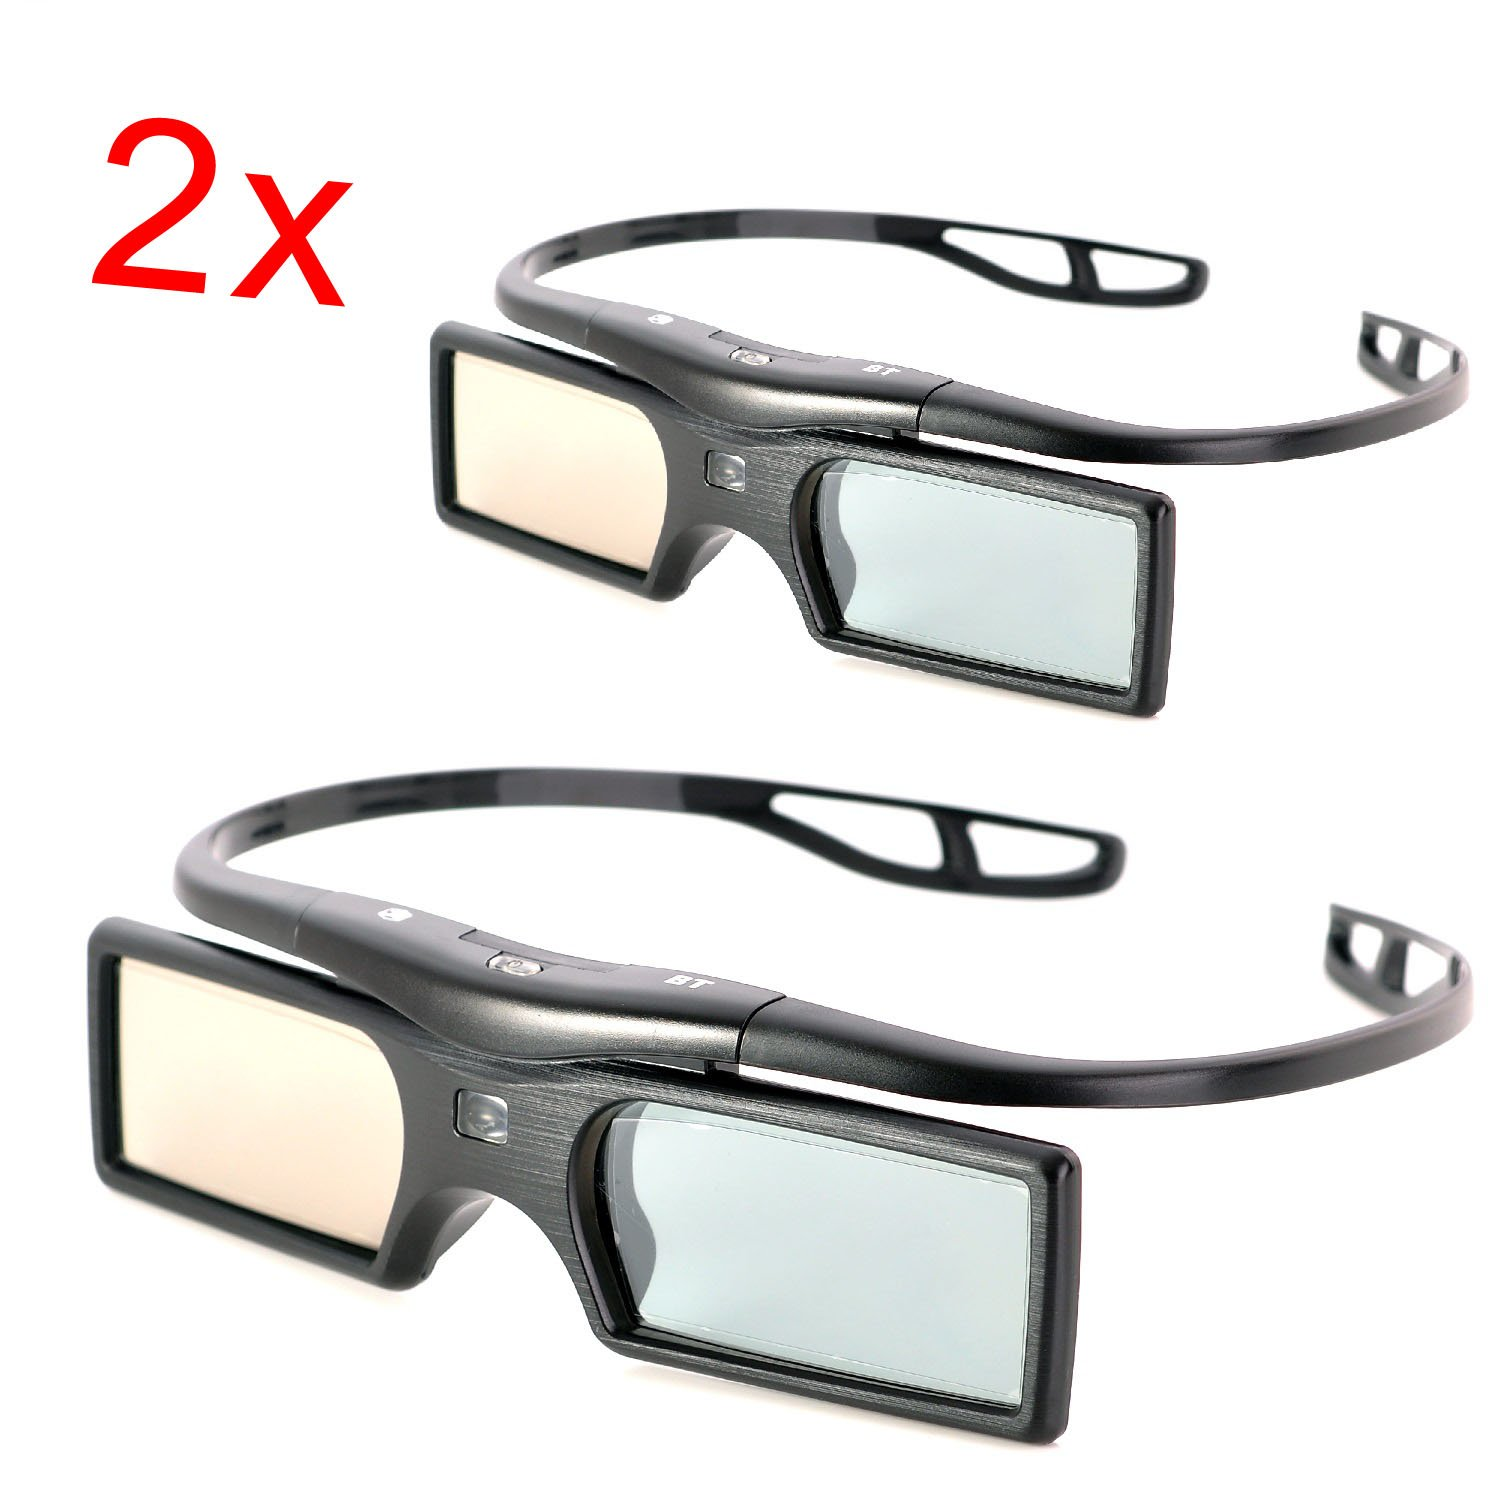 KR-NET 2x Replacement Active Shutter 3D Glasses of TDG-BT400A / TDG-500A for Sony 3D TV (2013 or later models) by KR-NET